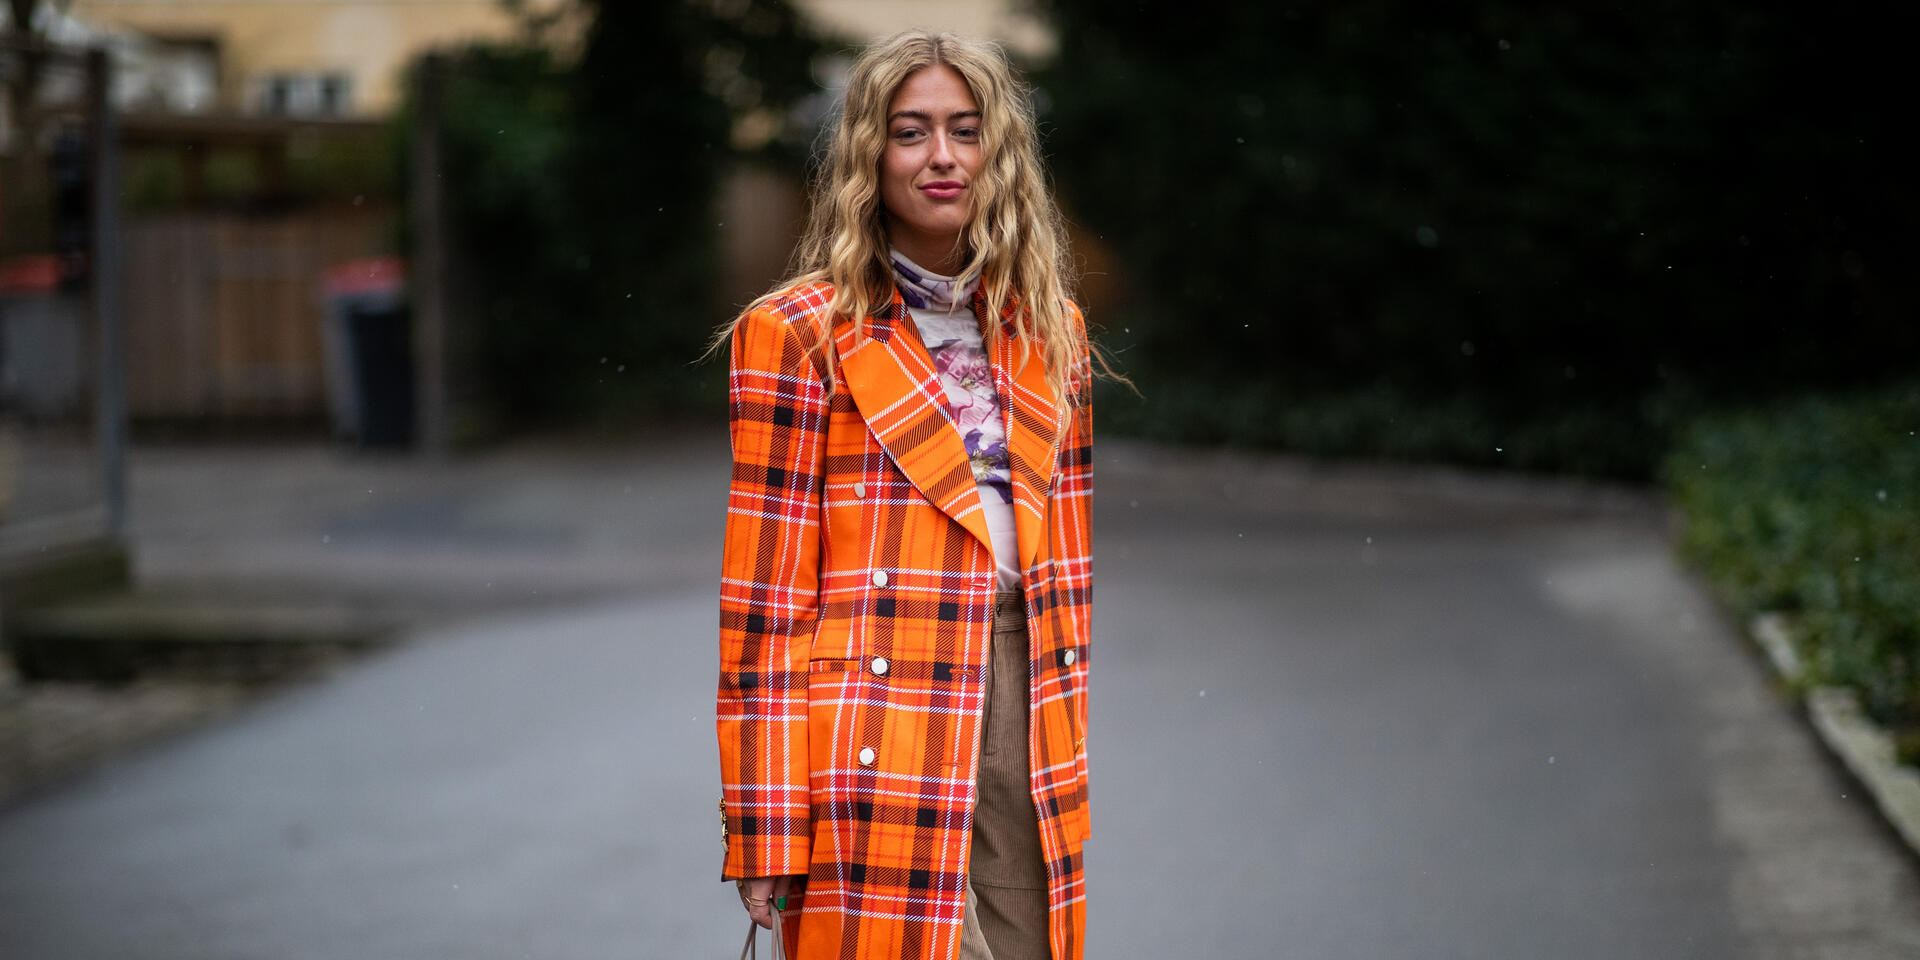 COPENHAGEN, DENMARK - JANUARY 31: Emili Sindlev is seen wearing orange plaid coat outside By Malene Birger during the Copenhagen Fashion Week Autumn/Winter 2019 - Day 3 on January 31, 2019 in Copenhagen, Denmark. (Photo by Christian Vierig/Getty Images)